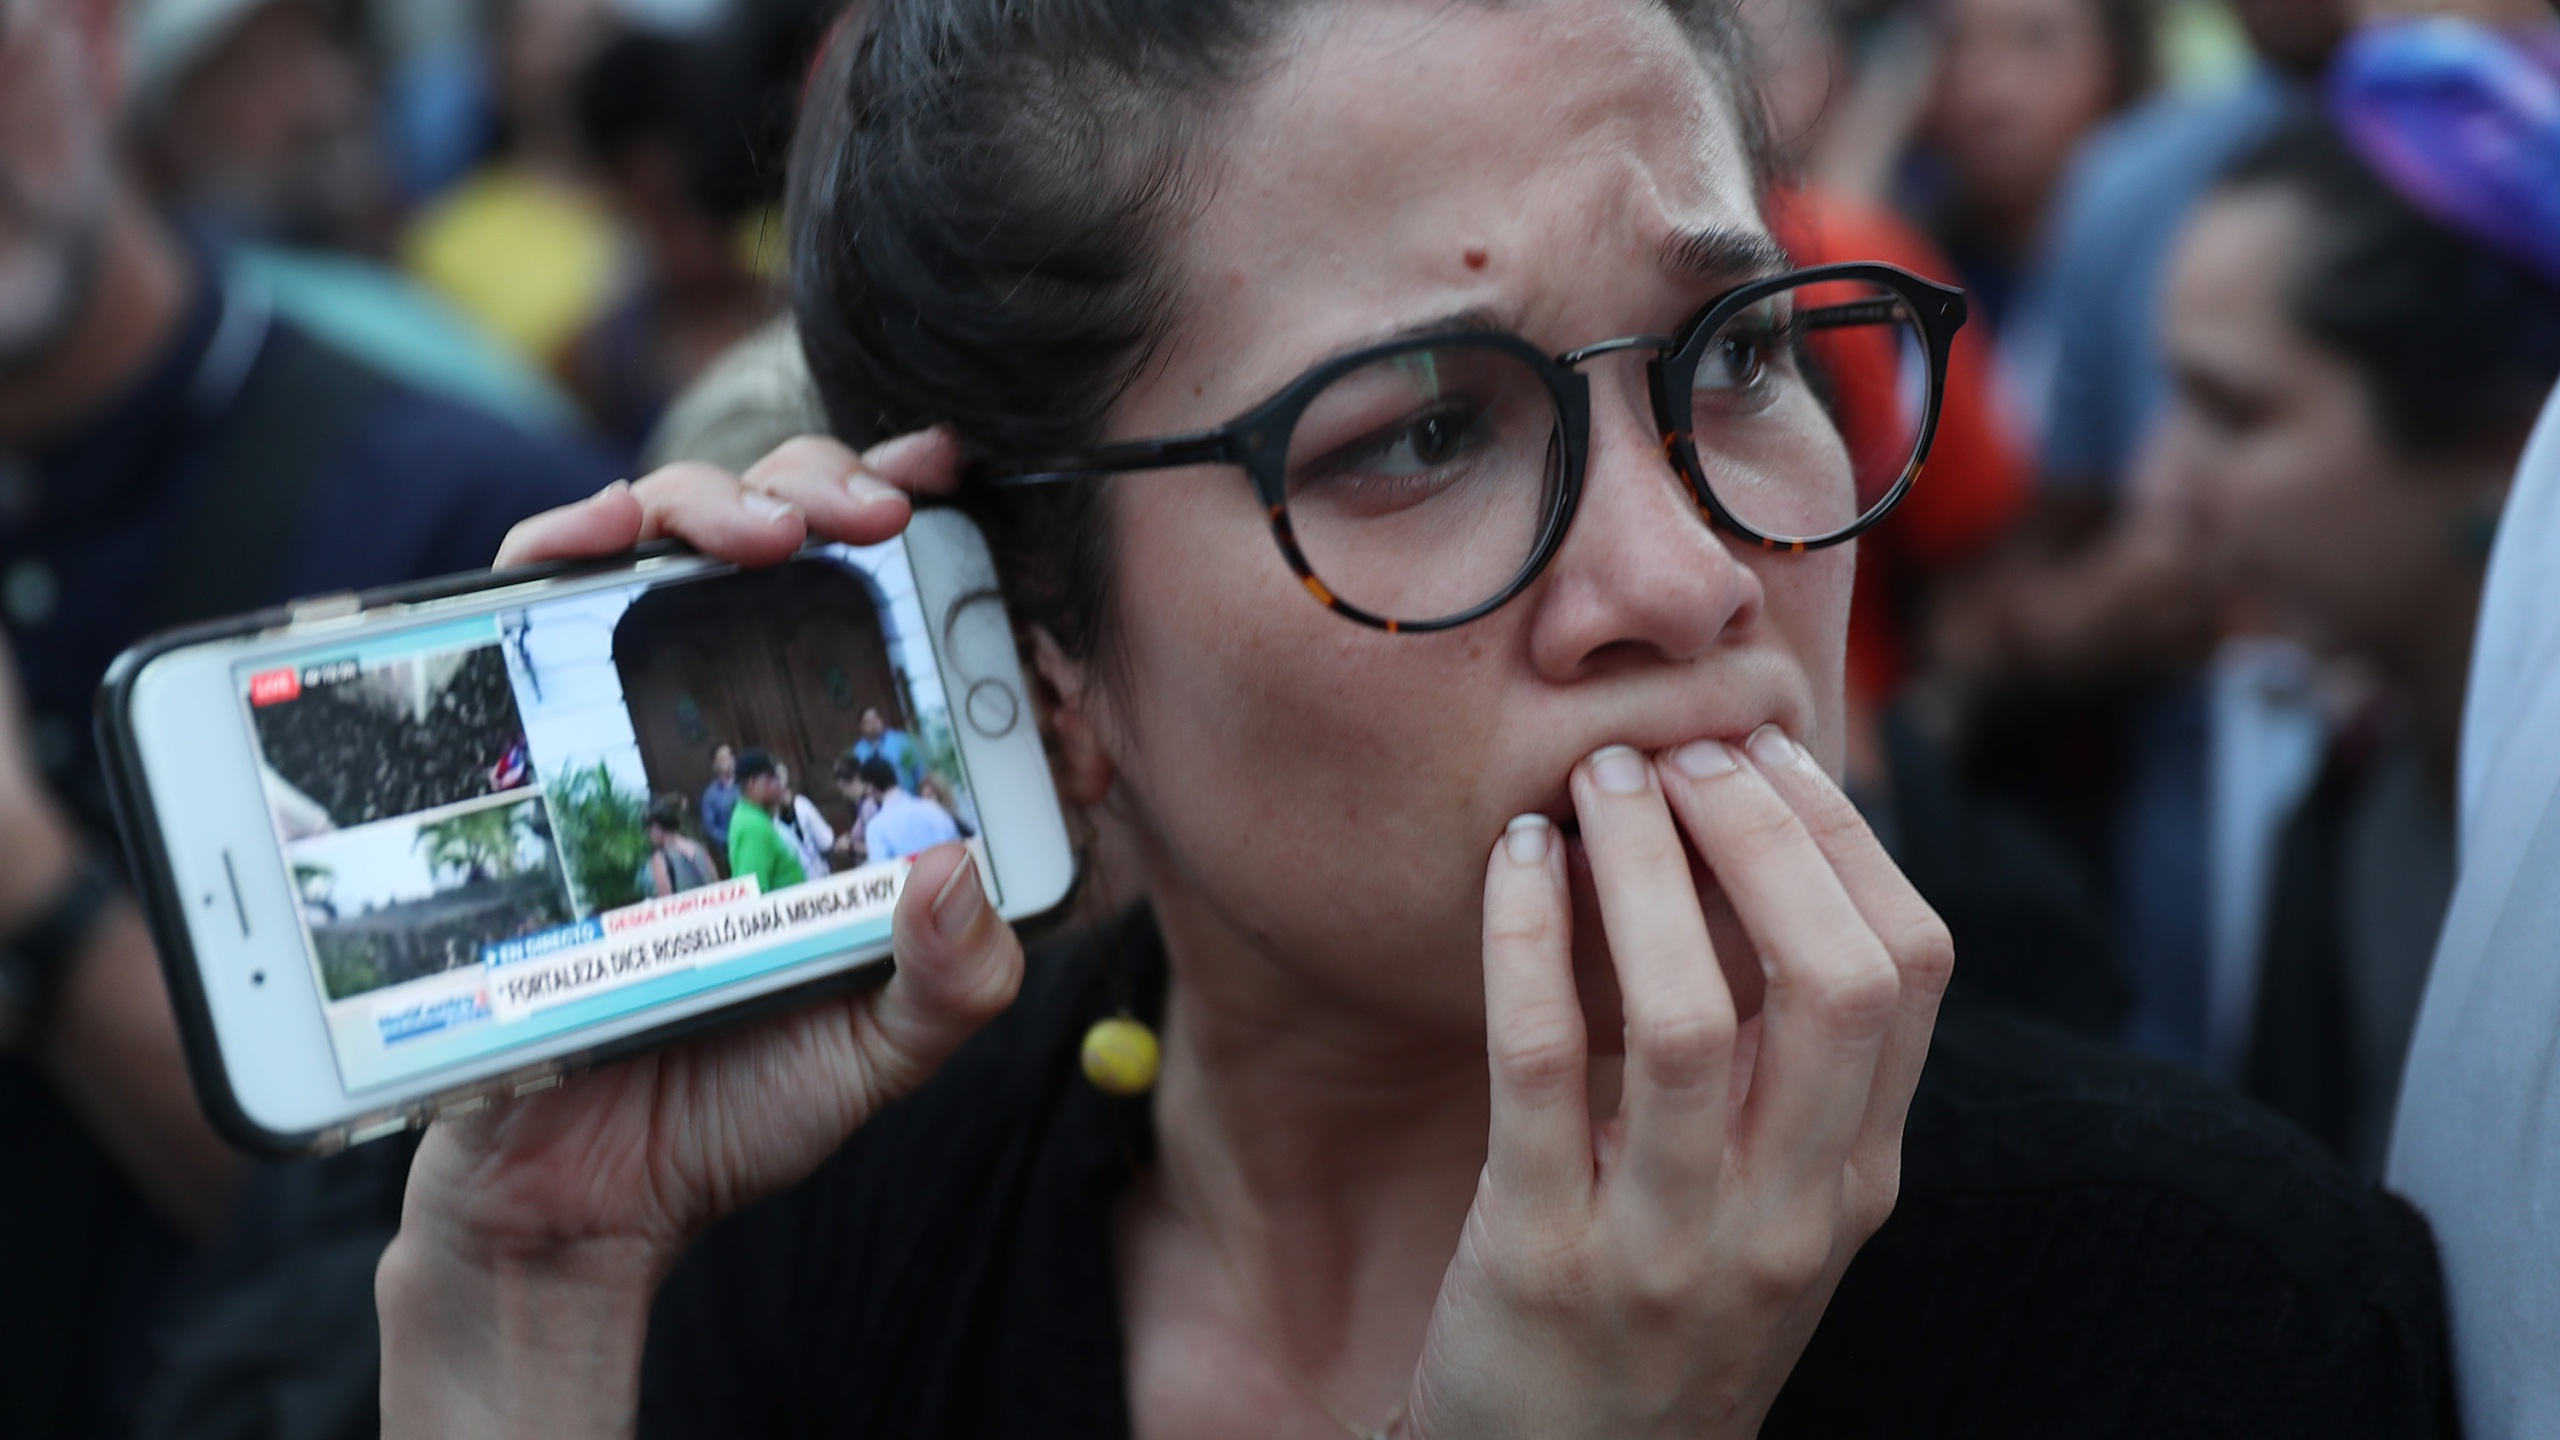 Protesters listen to a broadcast from inside the governor's mansion on their mobile phones as expectations remained high that Gov. Ricardo Rosselló would step down on July 24, 2019 in Old San Juan, Puerto Rico. (Joe Raedle/Getty Images)